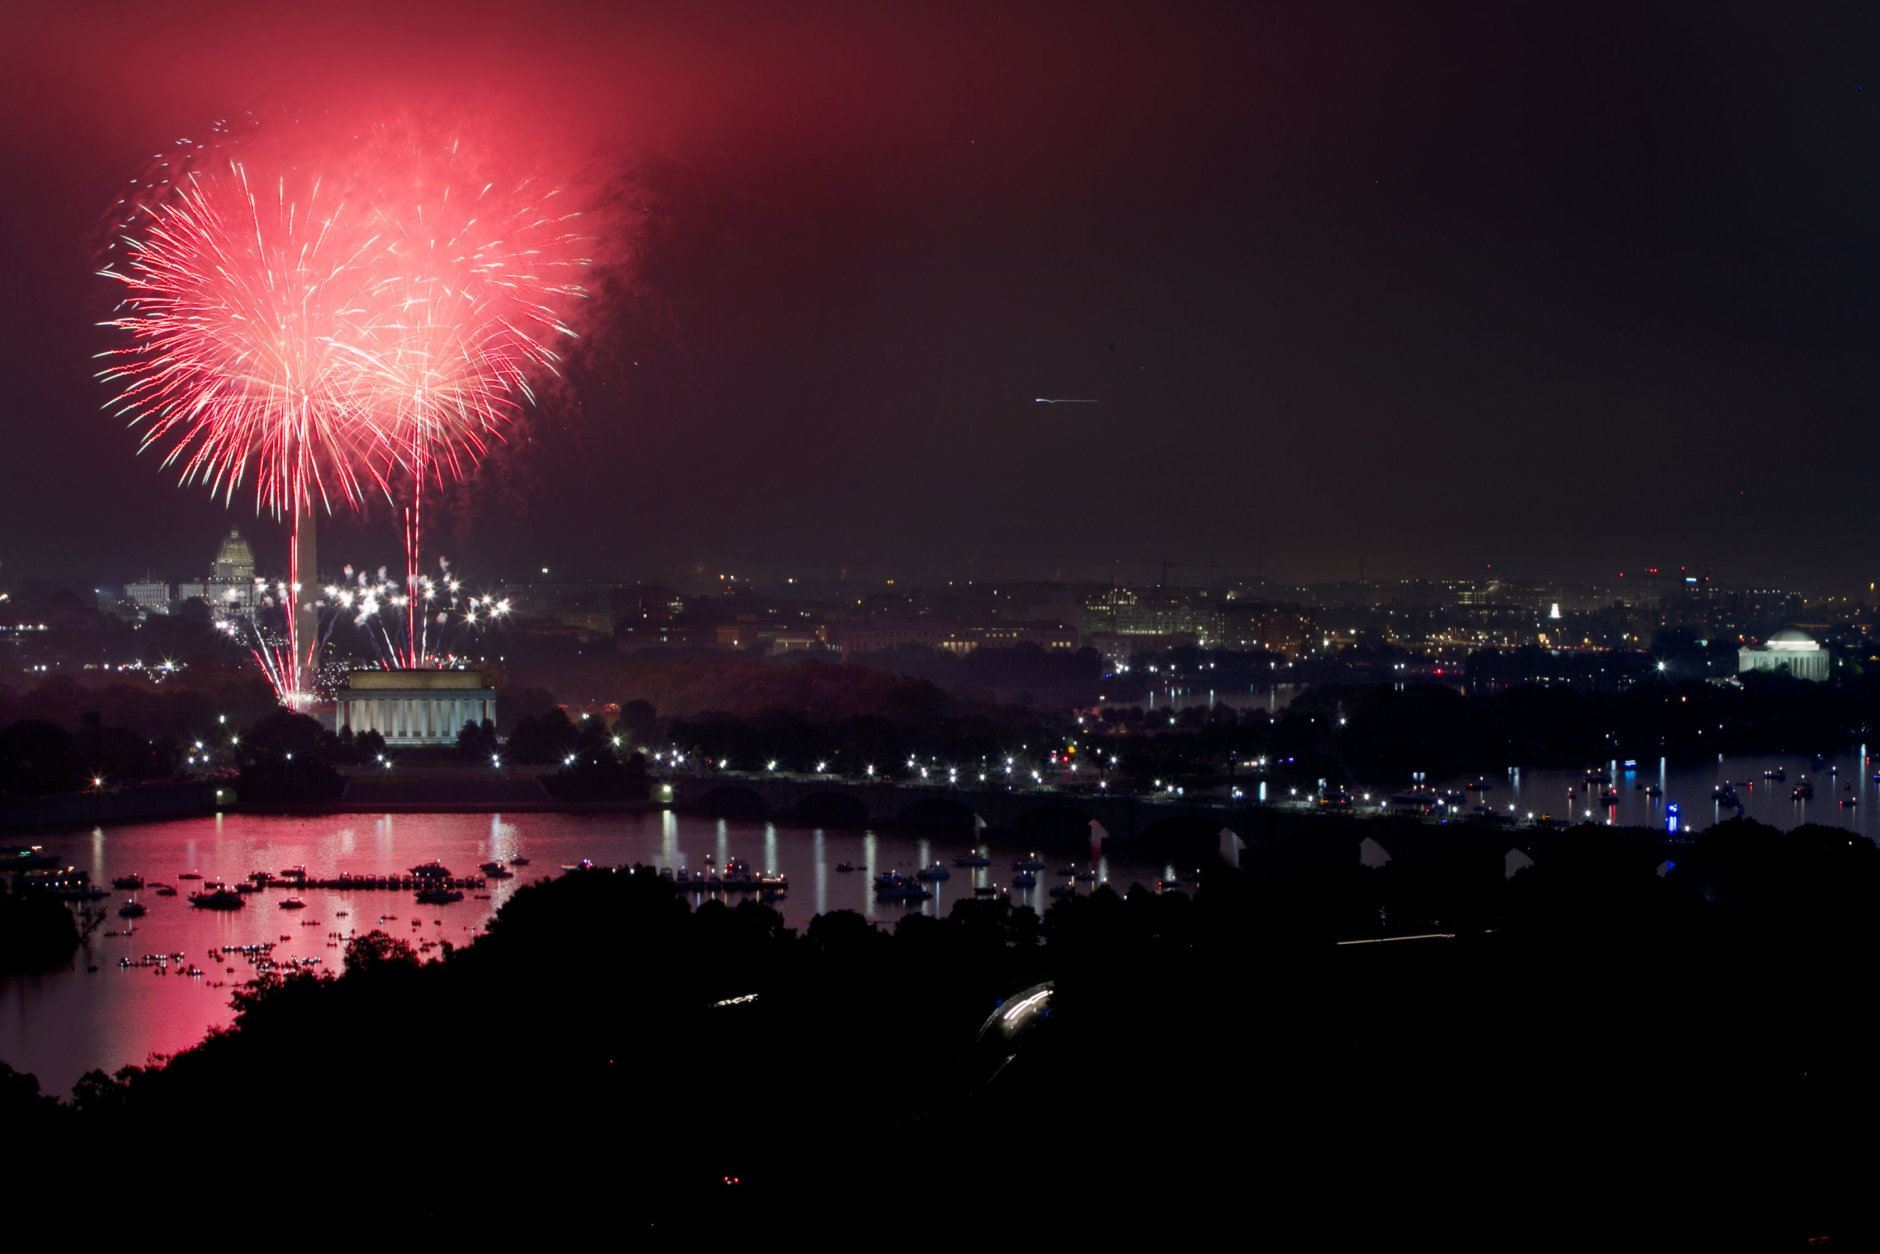 Fireworks explode over the National Mall for Fourth of July celebrations in Washington, photographed from Arlington, Va., on Saturday, July 4, 2015. (AP Photo/Jacquelyn Martin)